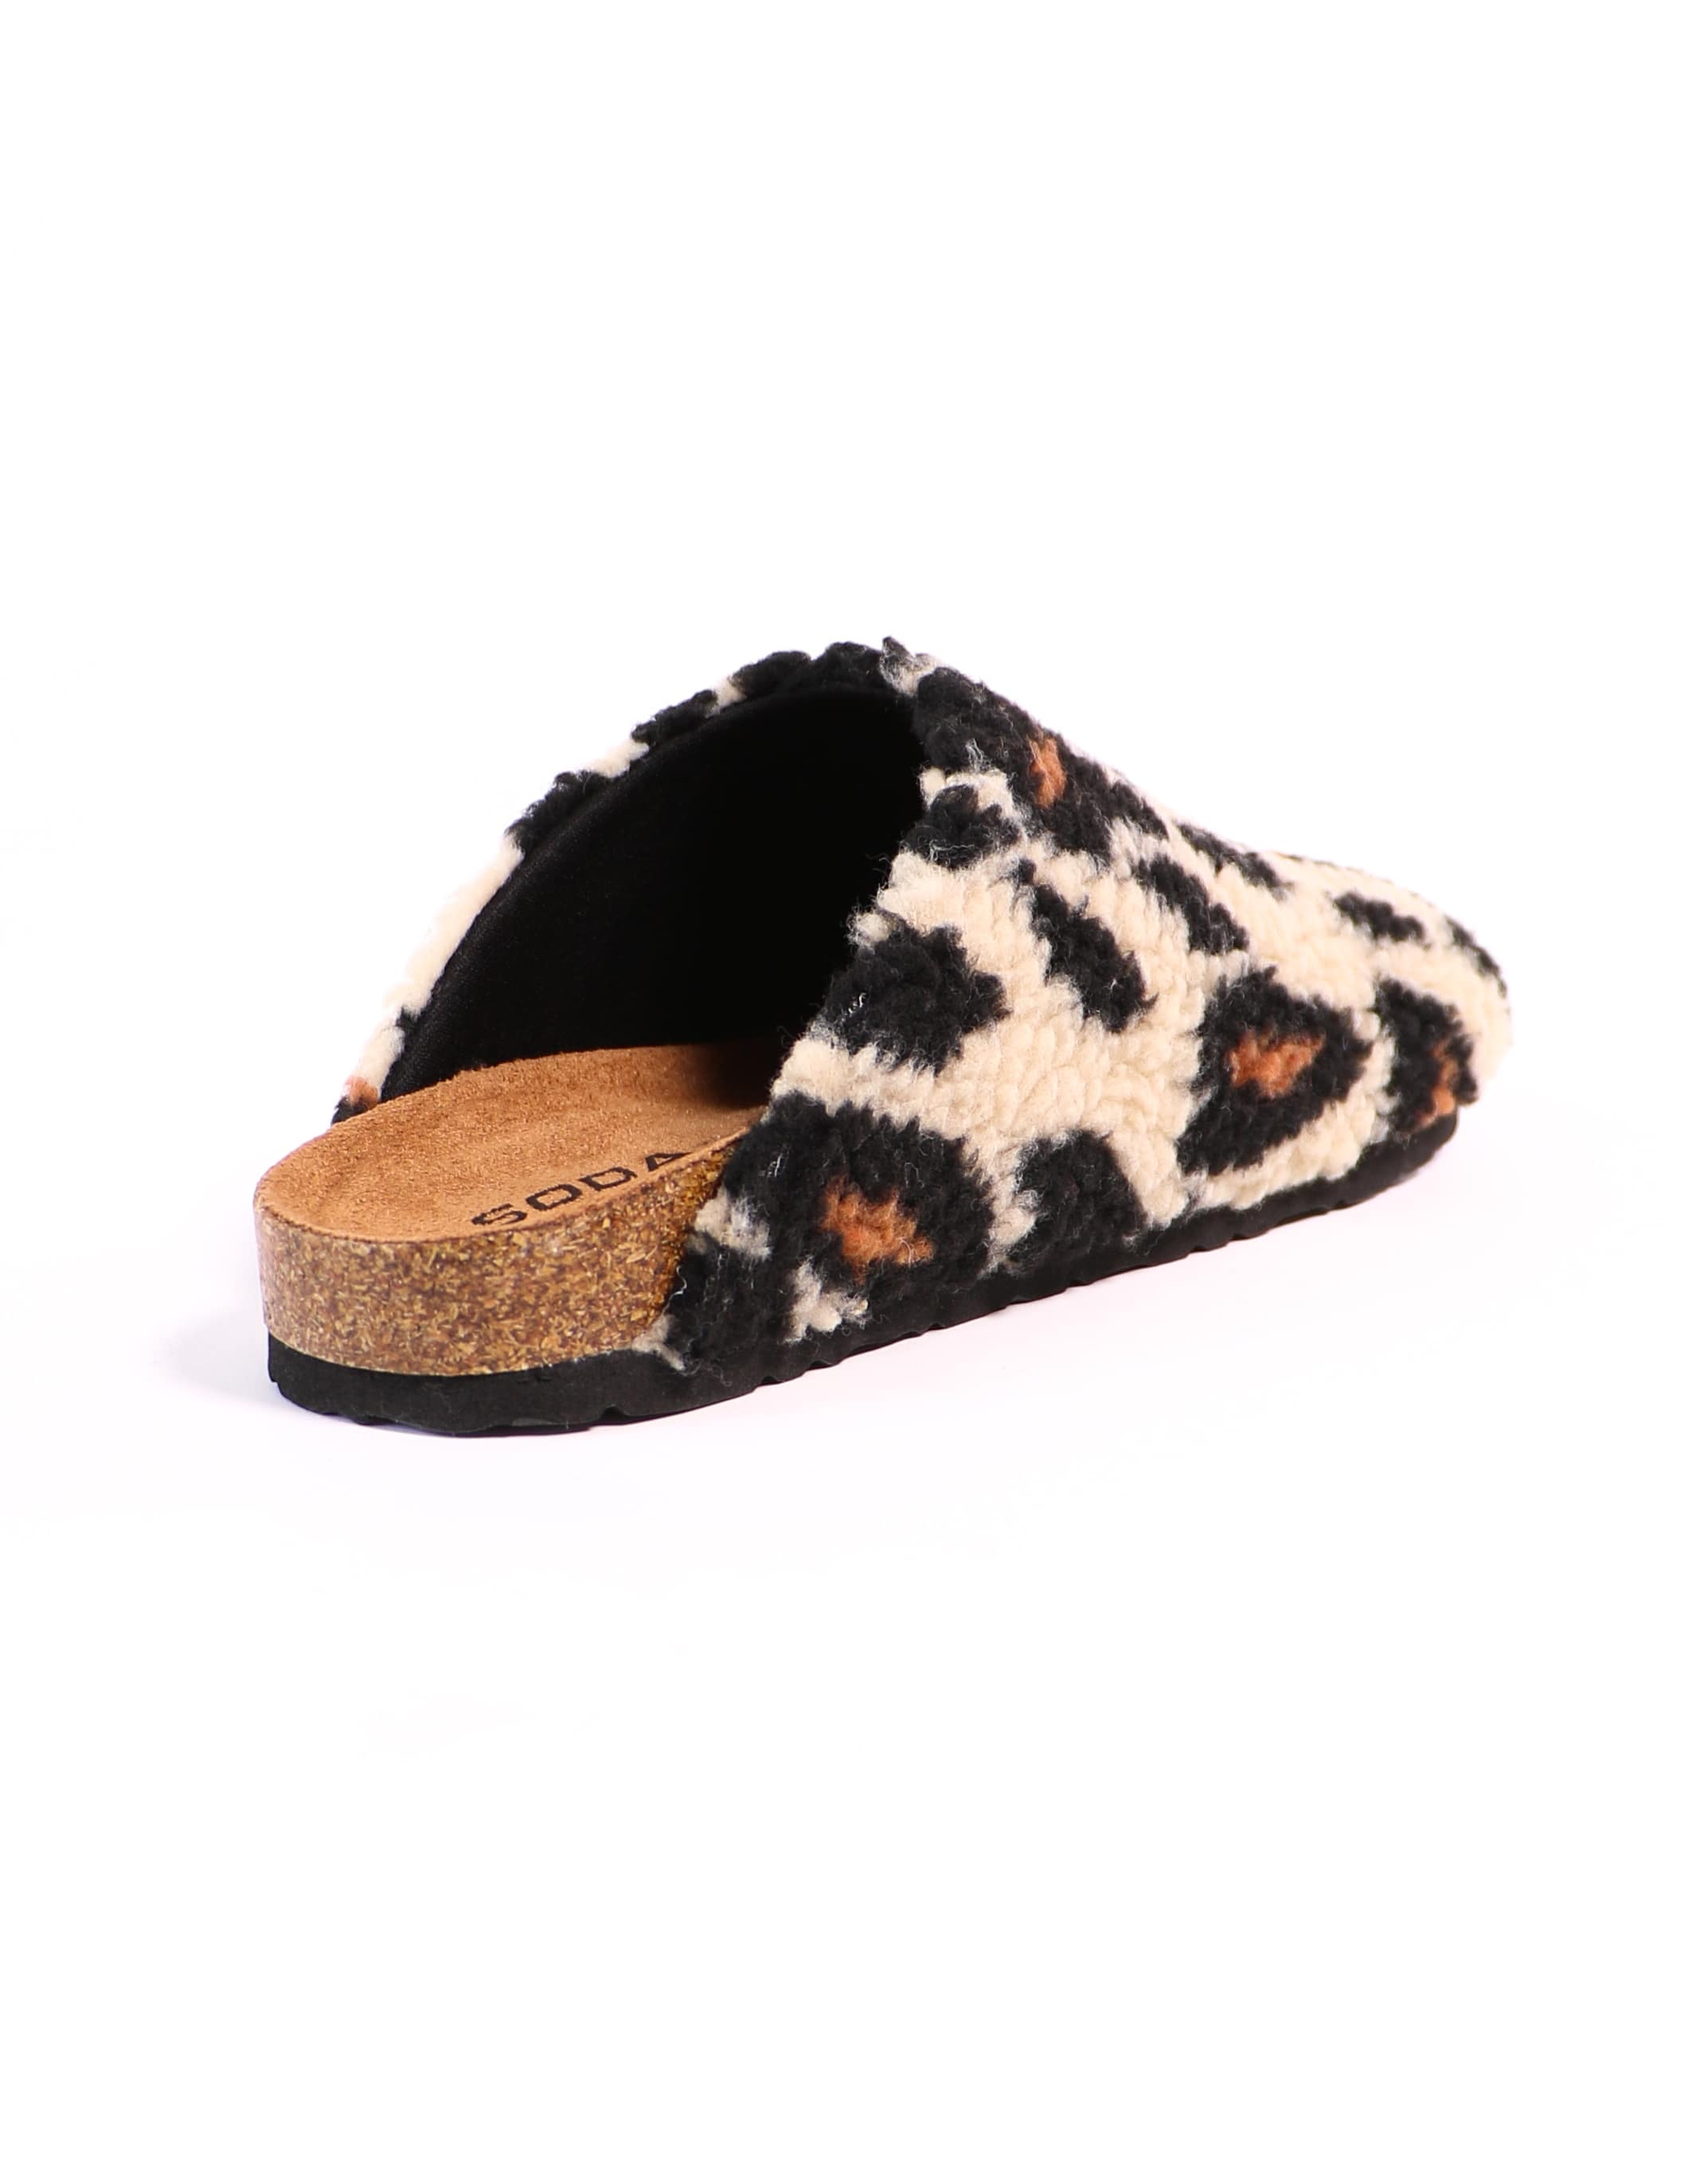 Inside view of the leopard i'm teddy to go clog  - elle bleu shoes